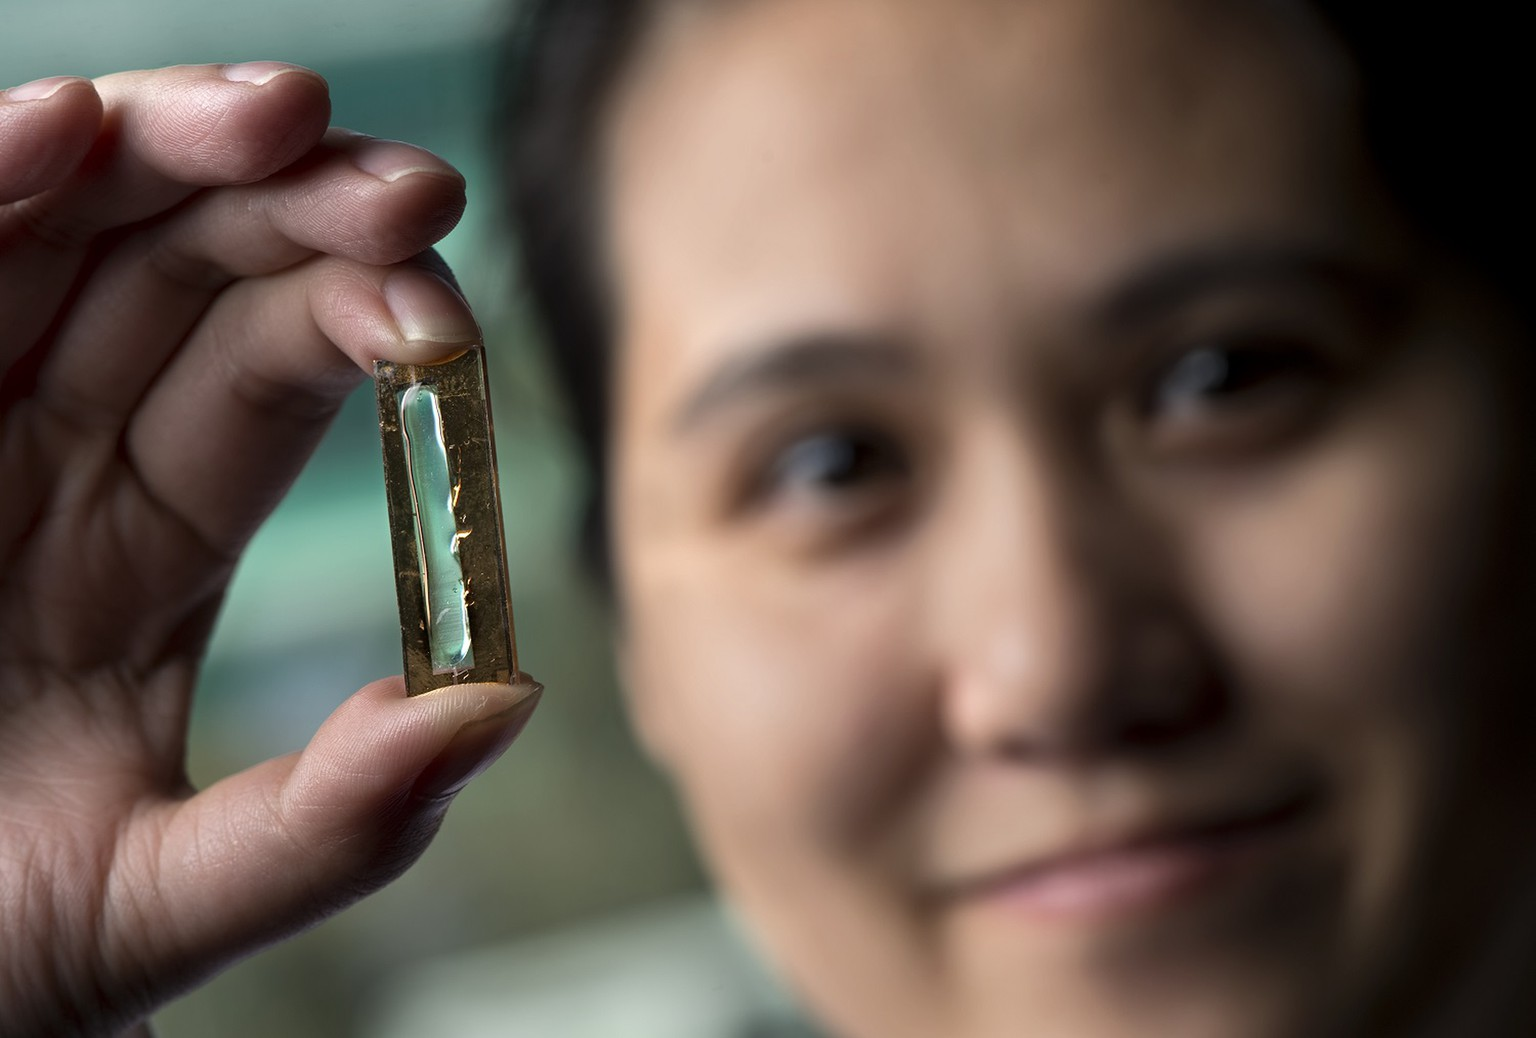 UCI chemist Reginald Penner and doctoral student Mya Le Thai, shown, have developed a nanowire-based battery technology that allows lithium ion batteries to be recharged hundreds of thousands of times. 